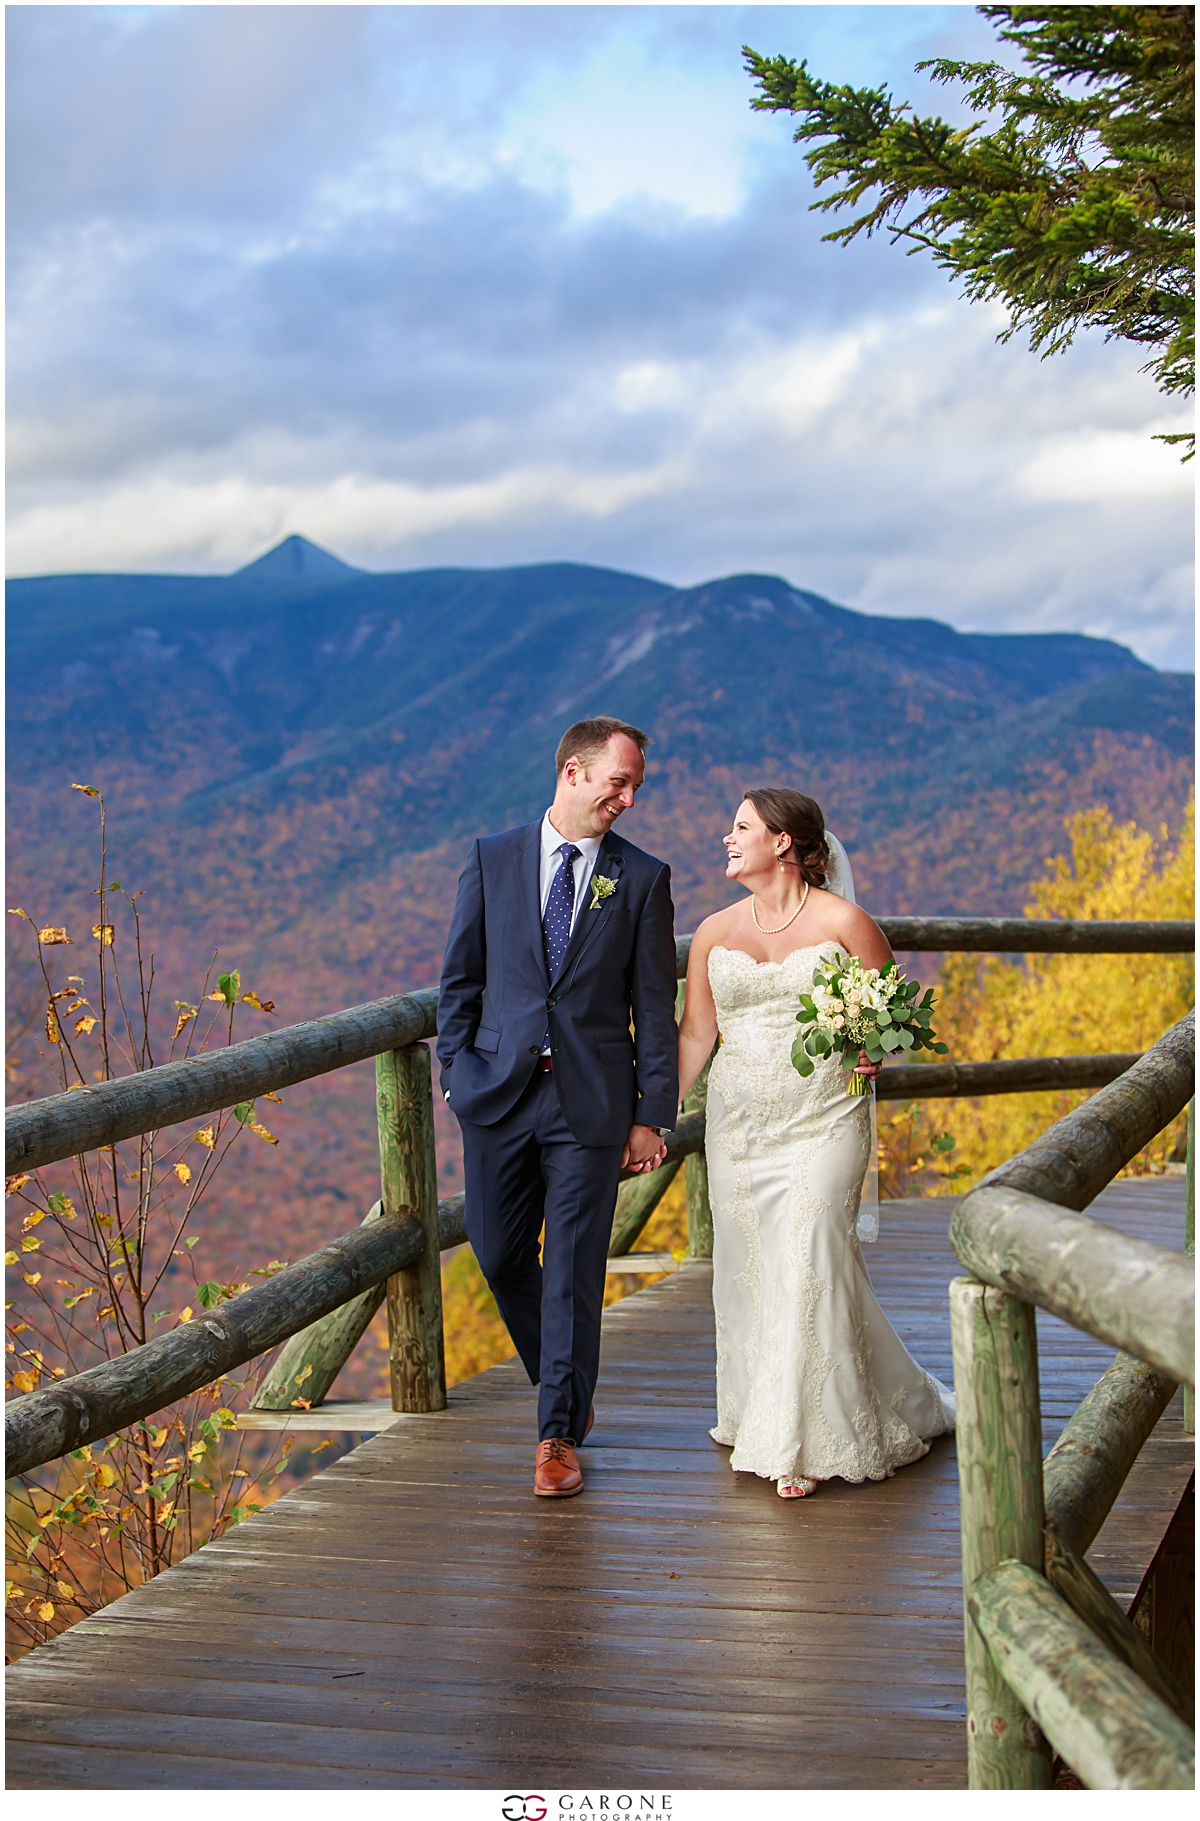 Garone_Photography_Loon_Mountain_Wedding_NH_White_Mountain_Wedding_Photography_0027.jpg